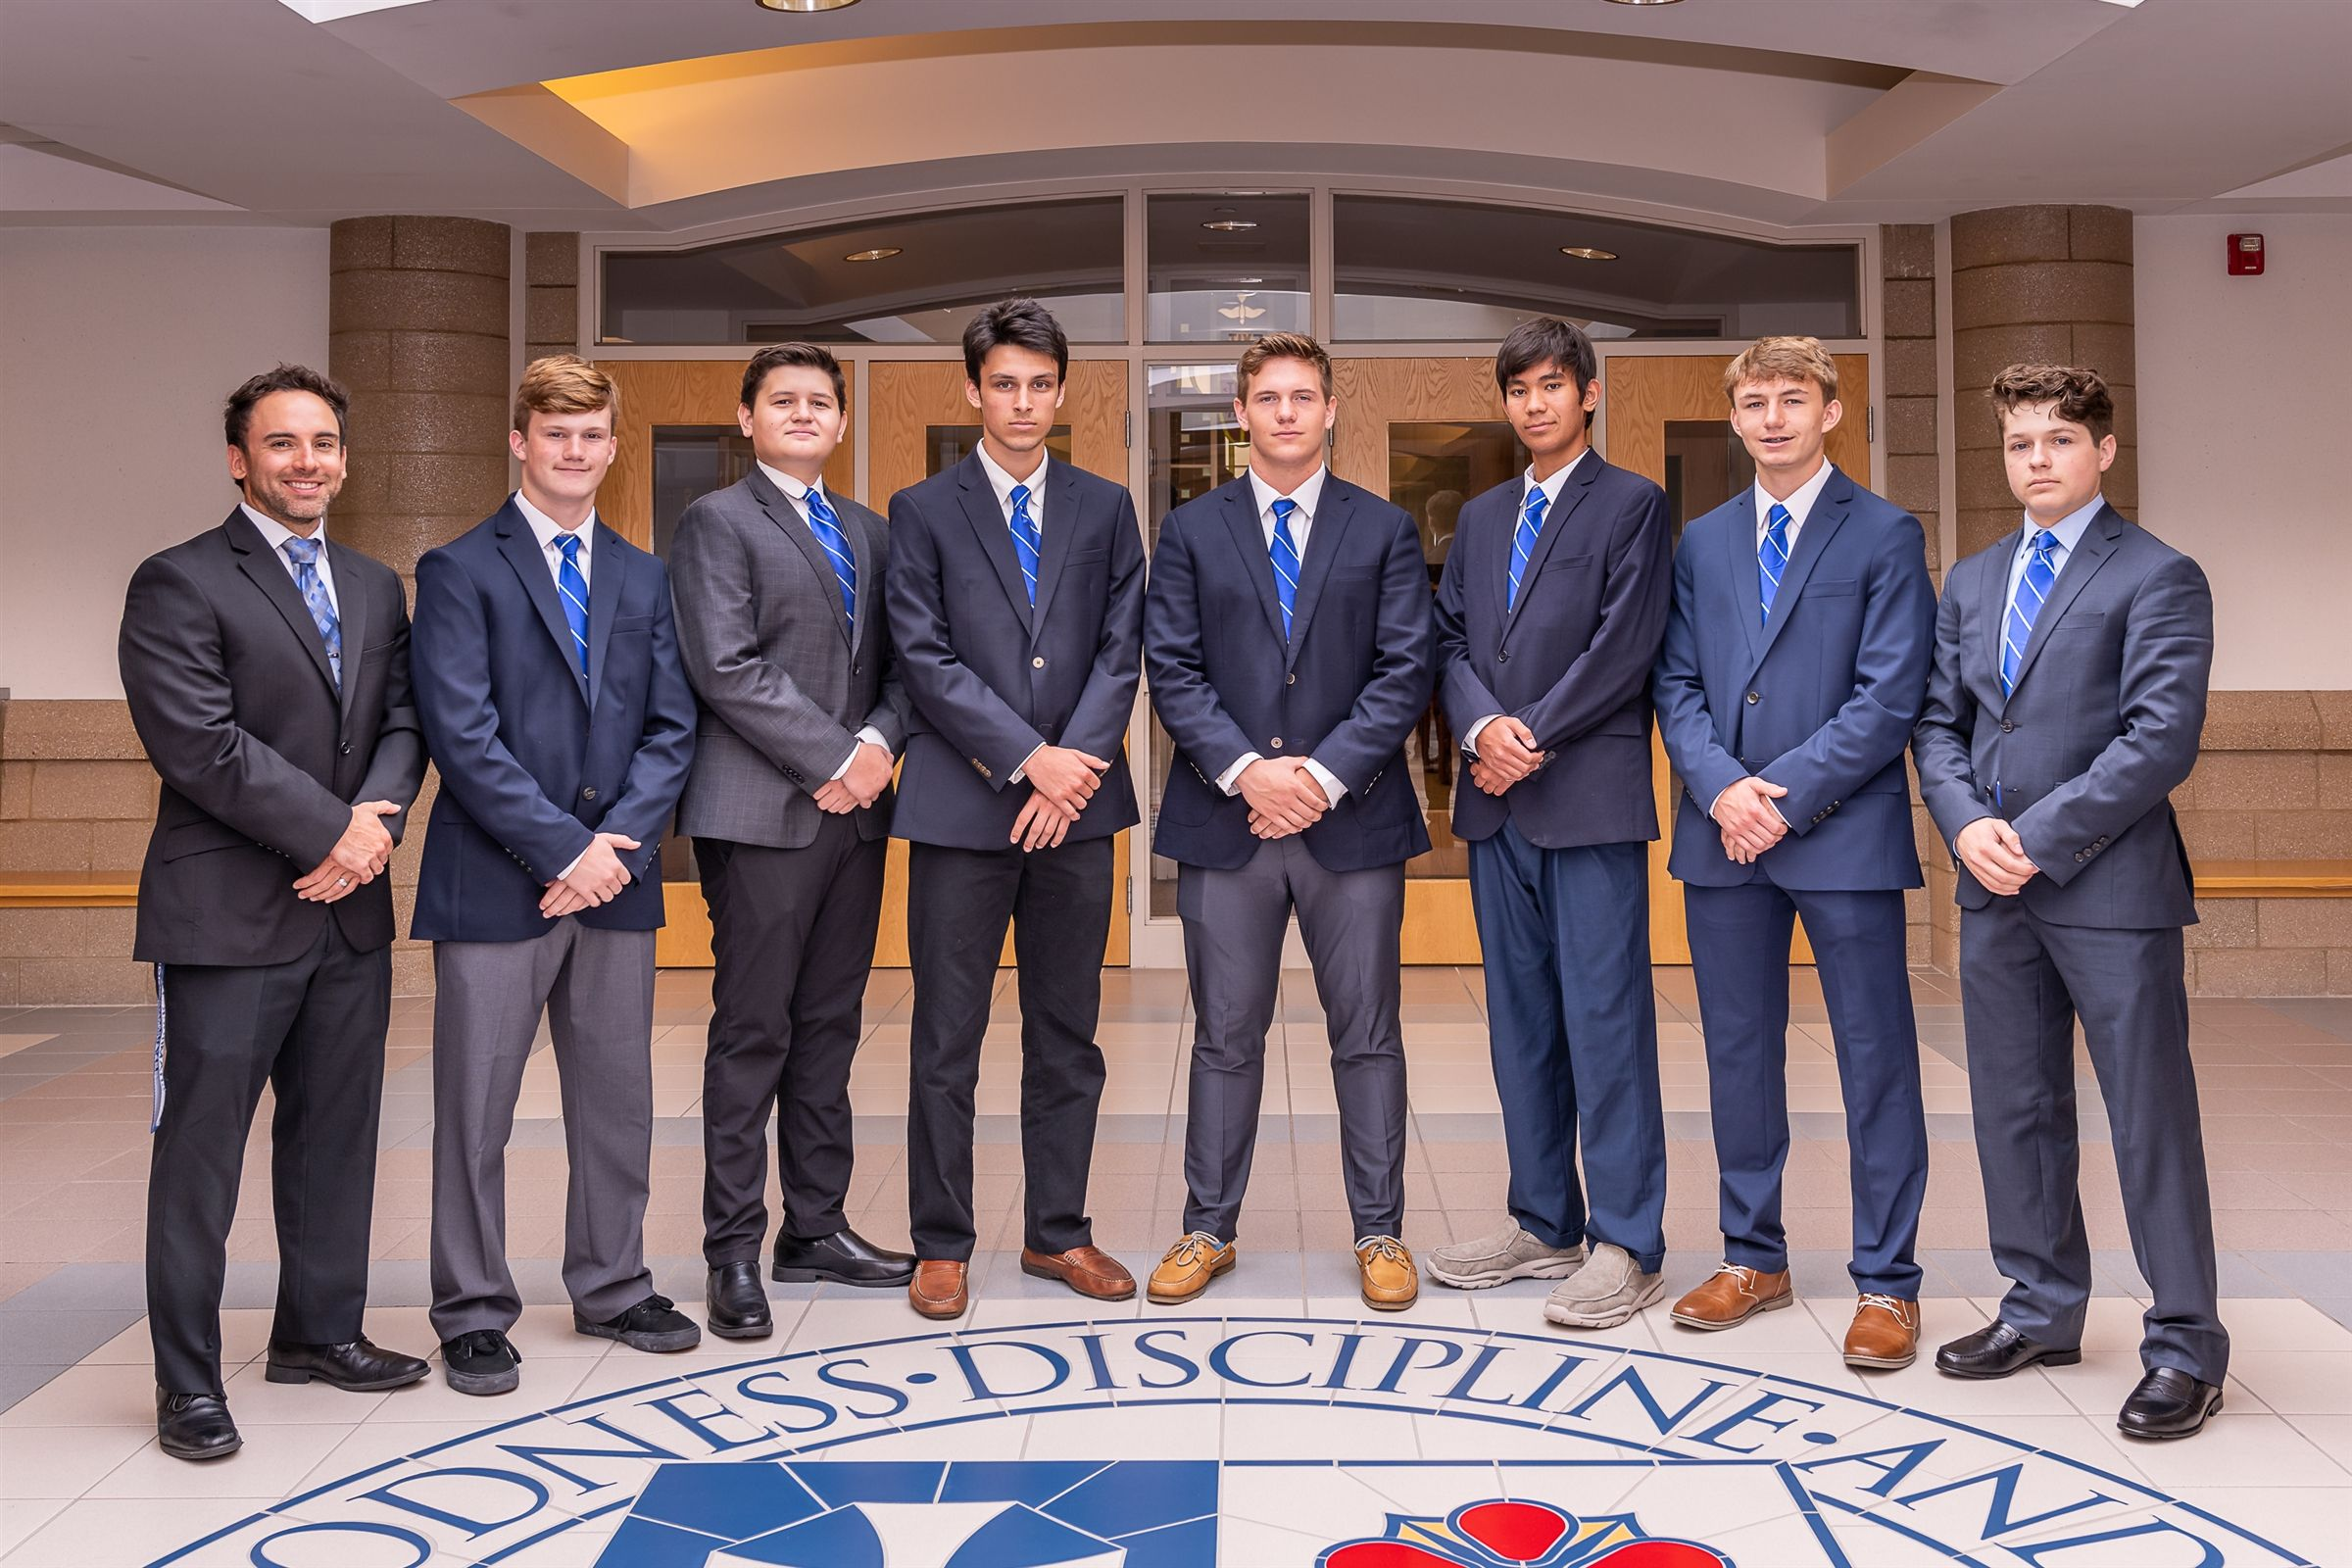 (L-R) Mr. Mike Mach, Moderator; Michael Sorrentino, Co-Vice President; Diego Guerra, Co-Secretary; Gavin Filip, Co-Treasurer; Sean Field, Co-President; Cole Nogawa, Co-Treasurer; Conner Bell, Co-Vice President; David Mondrusov, Co-Secretary (Not Pictured: Dhruv Kumar, Co-President)